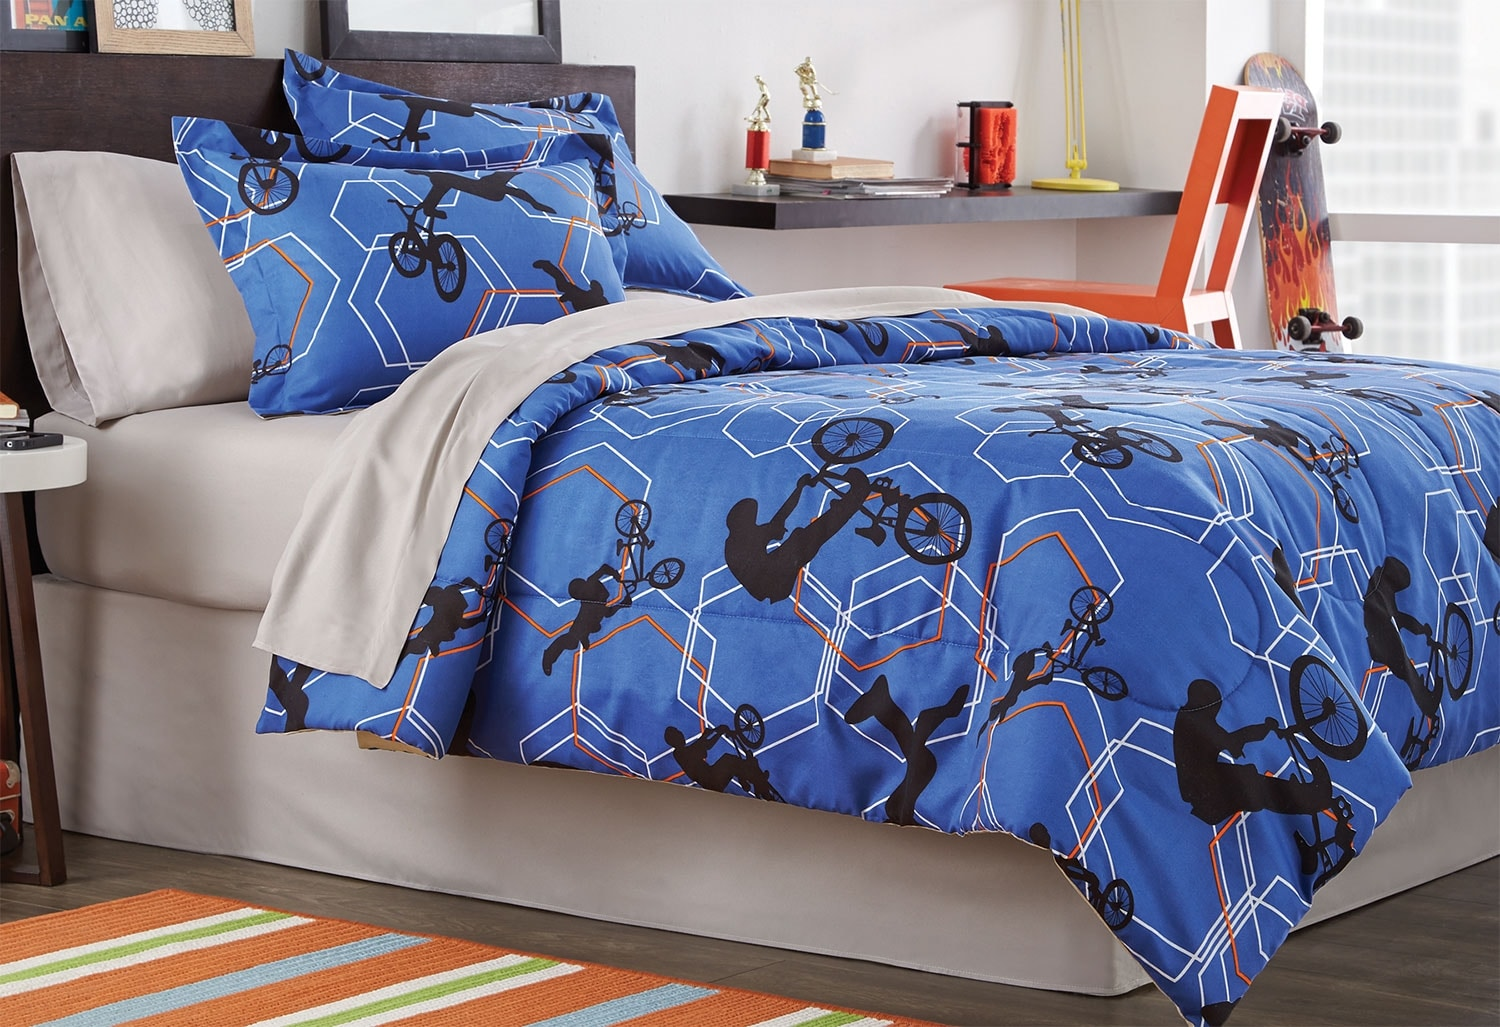 Mattresses and Bedding - Xtreme 8-Piece Full Comforter Set